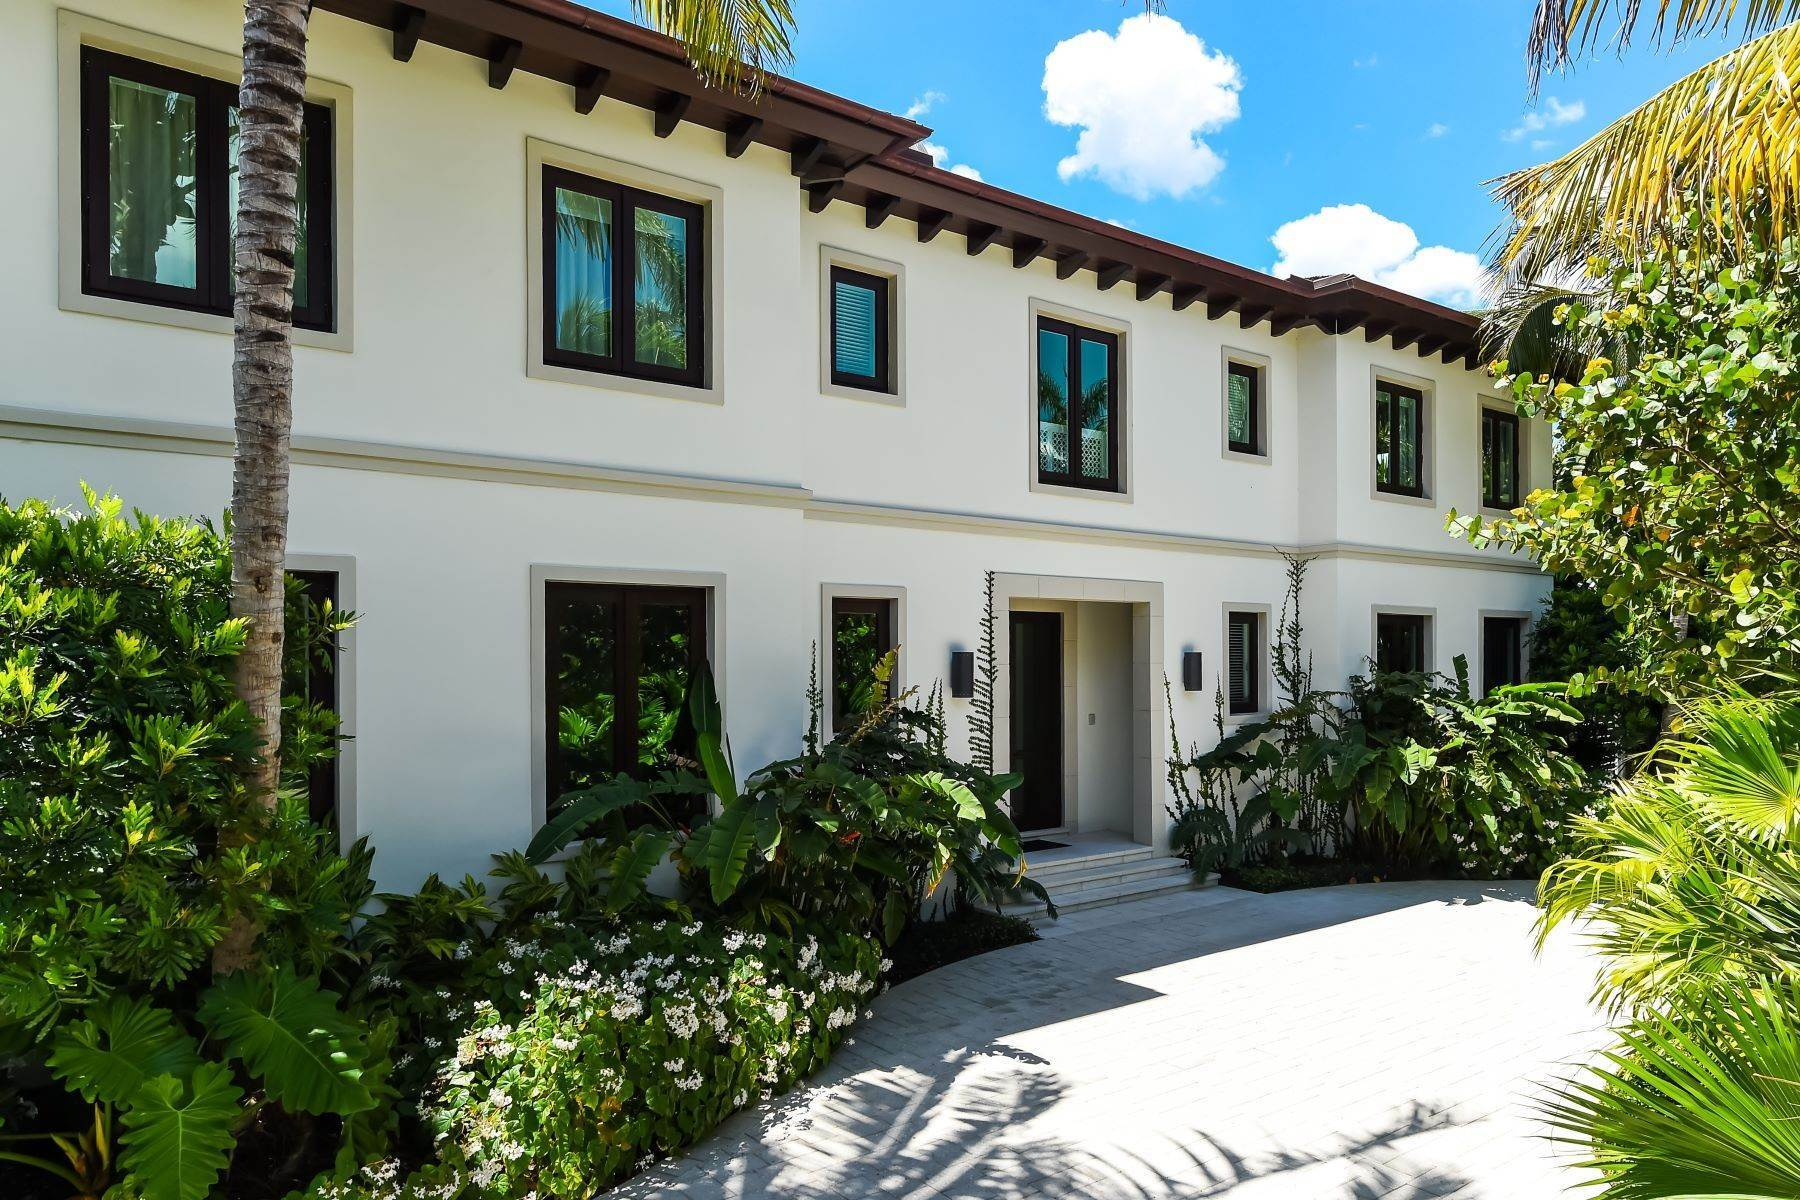 Single Family Homes for Sale at Gracious and Serene Living 250 Palmo Way Palm Beach, Florida 33480 United States